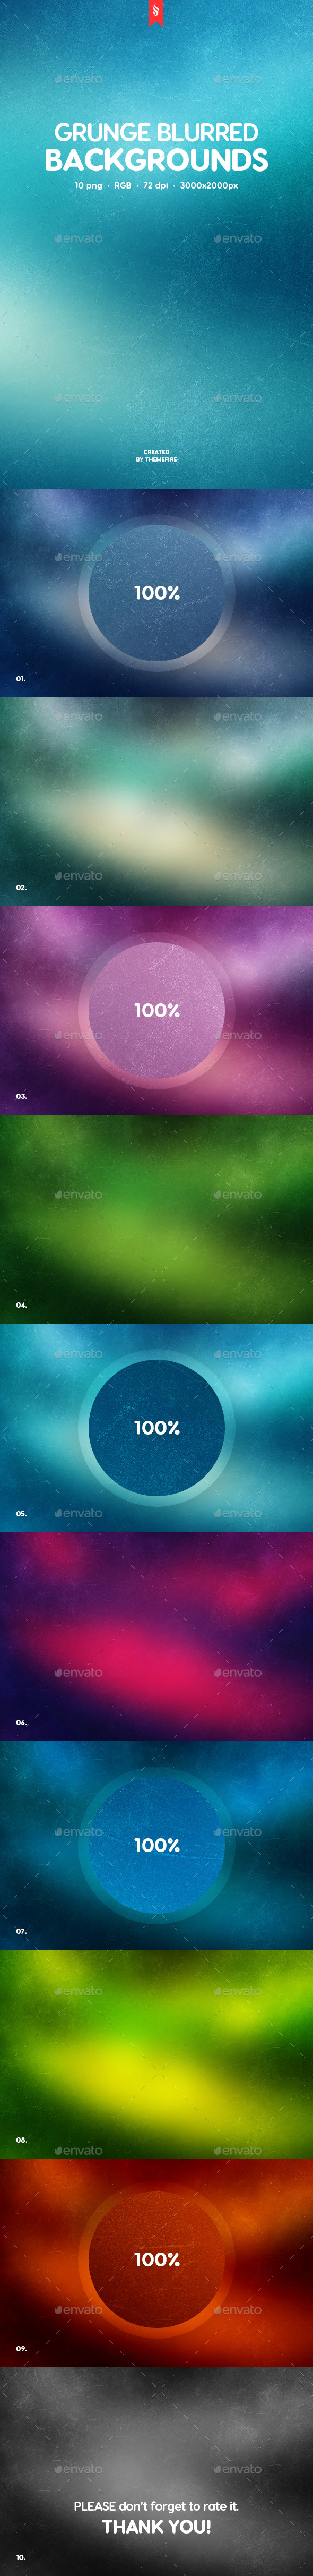 Grunge Blurred Backgrounds - Backgrounds Graphics